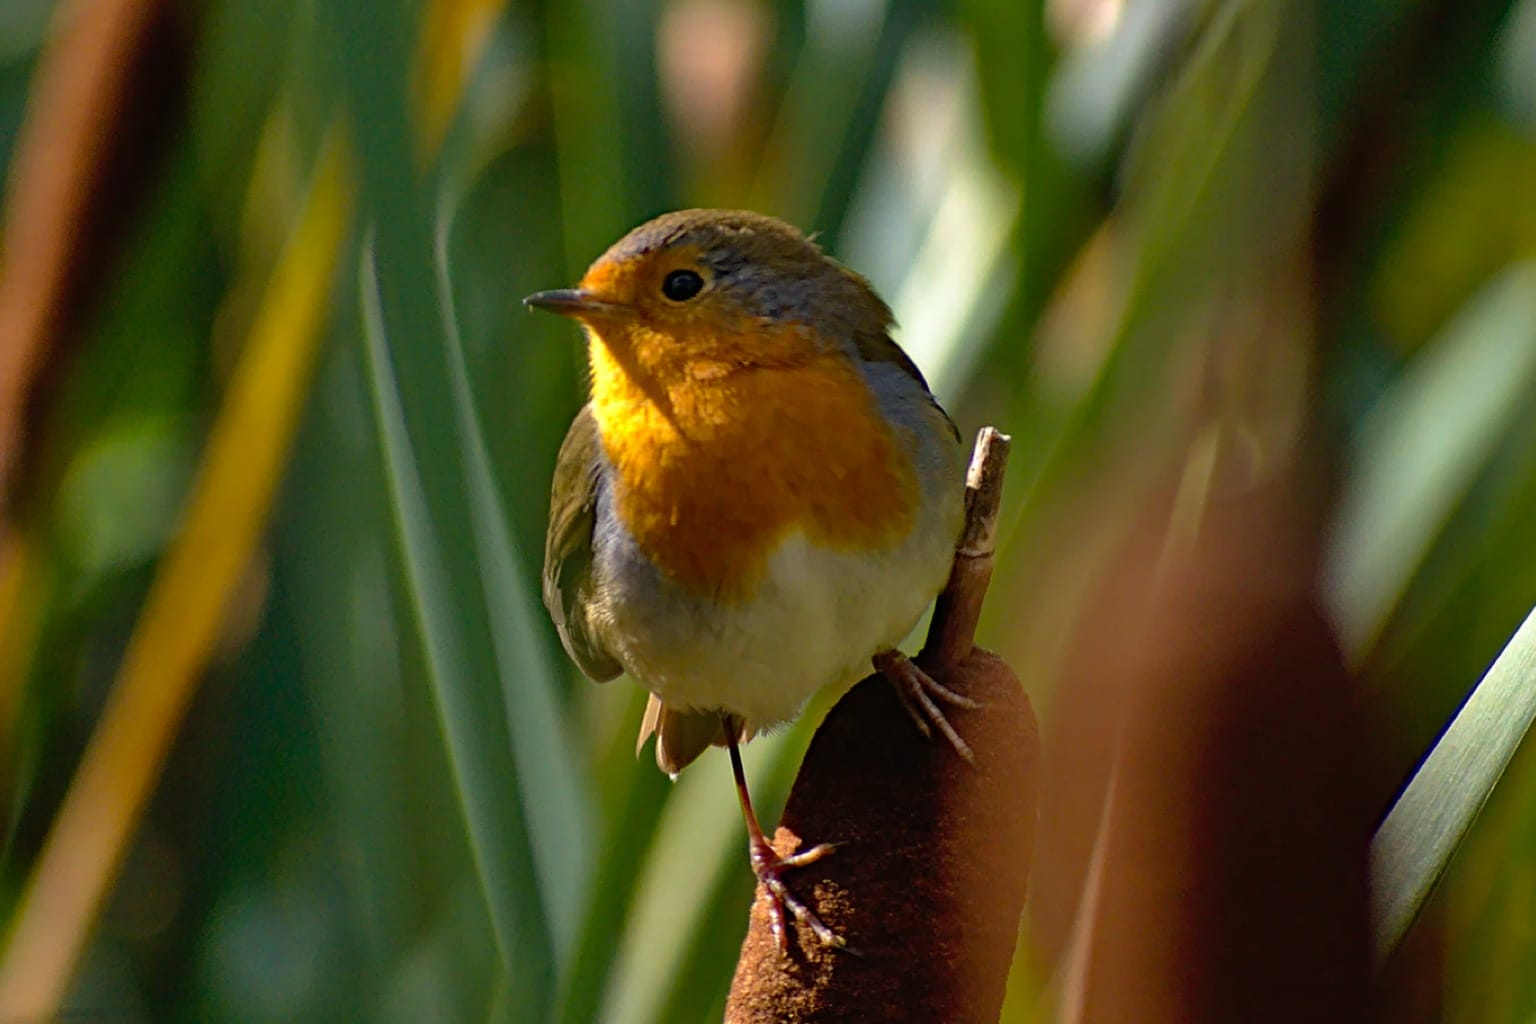 Help RSPB with a charity gift